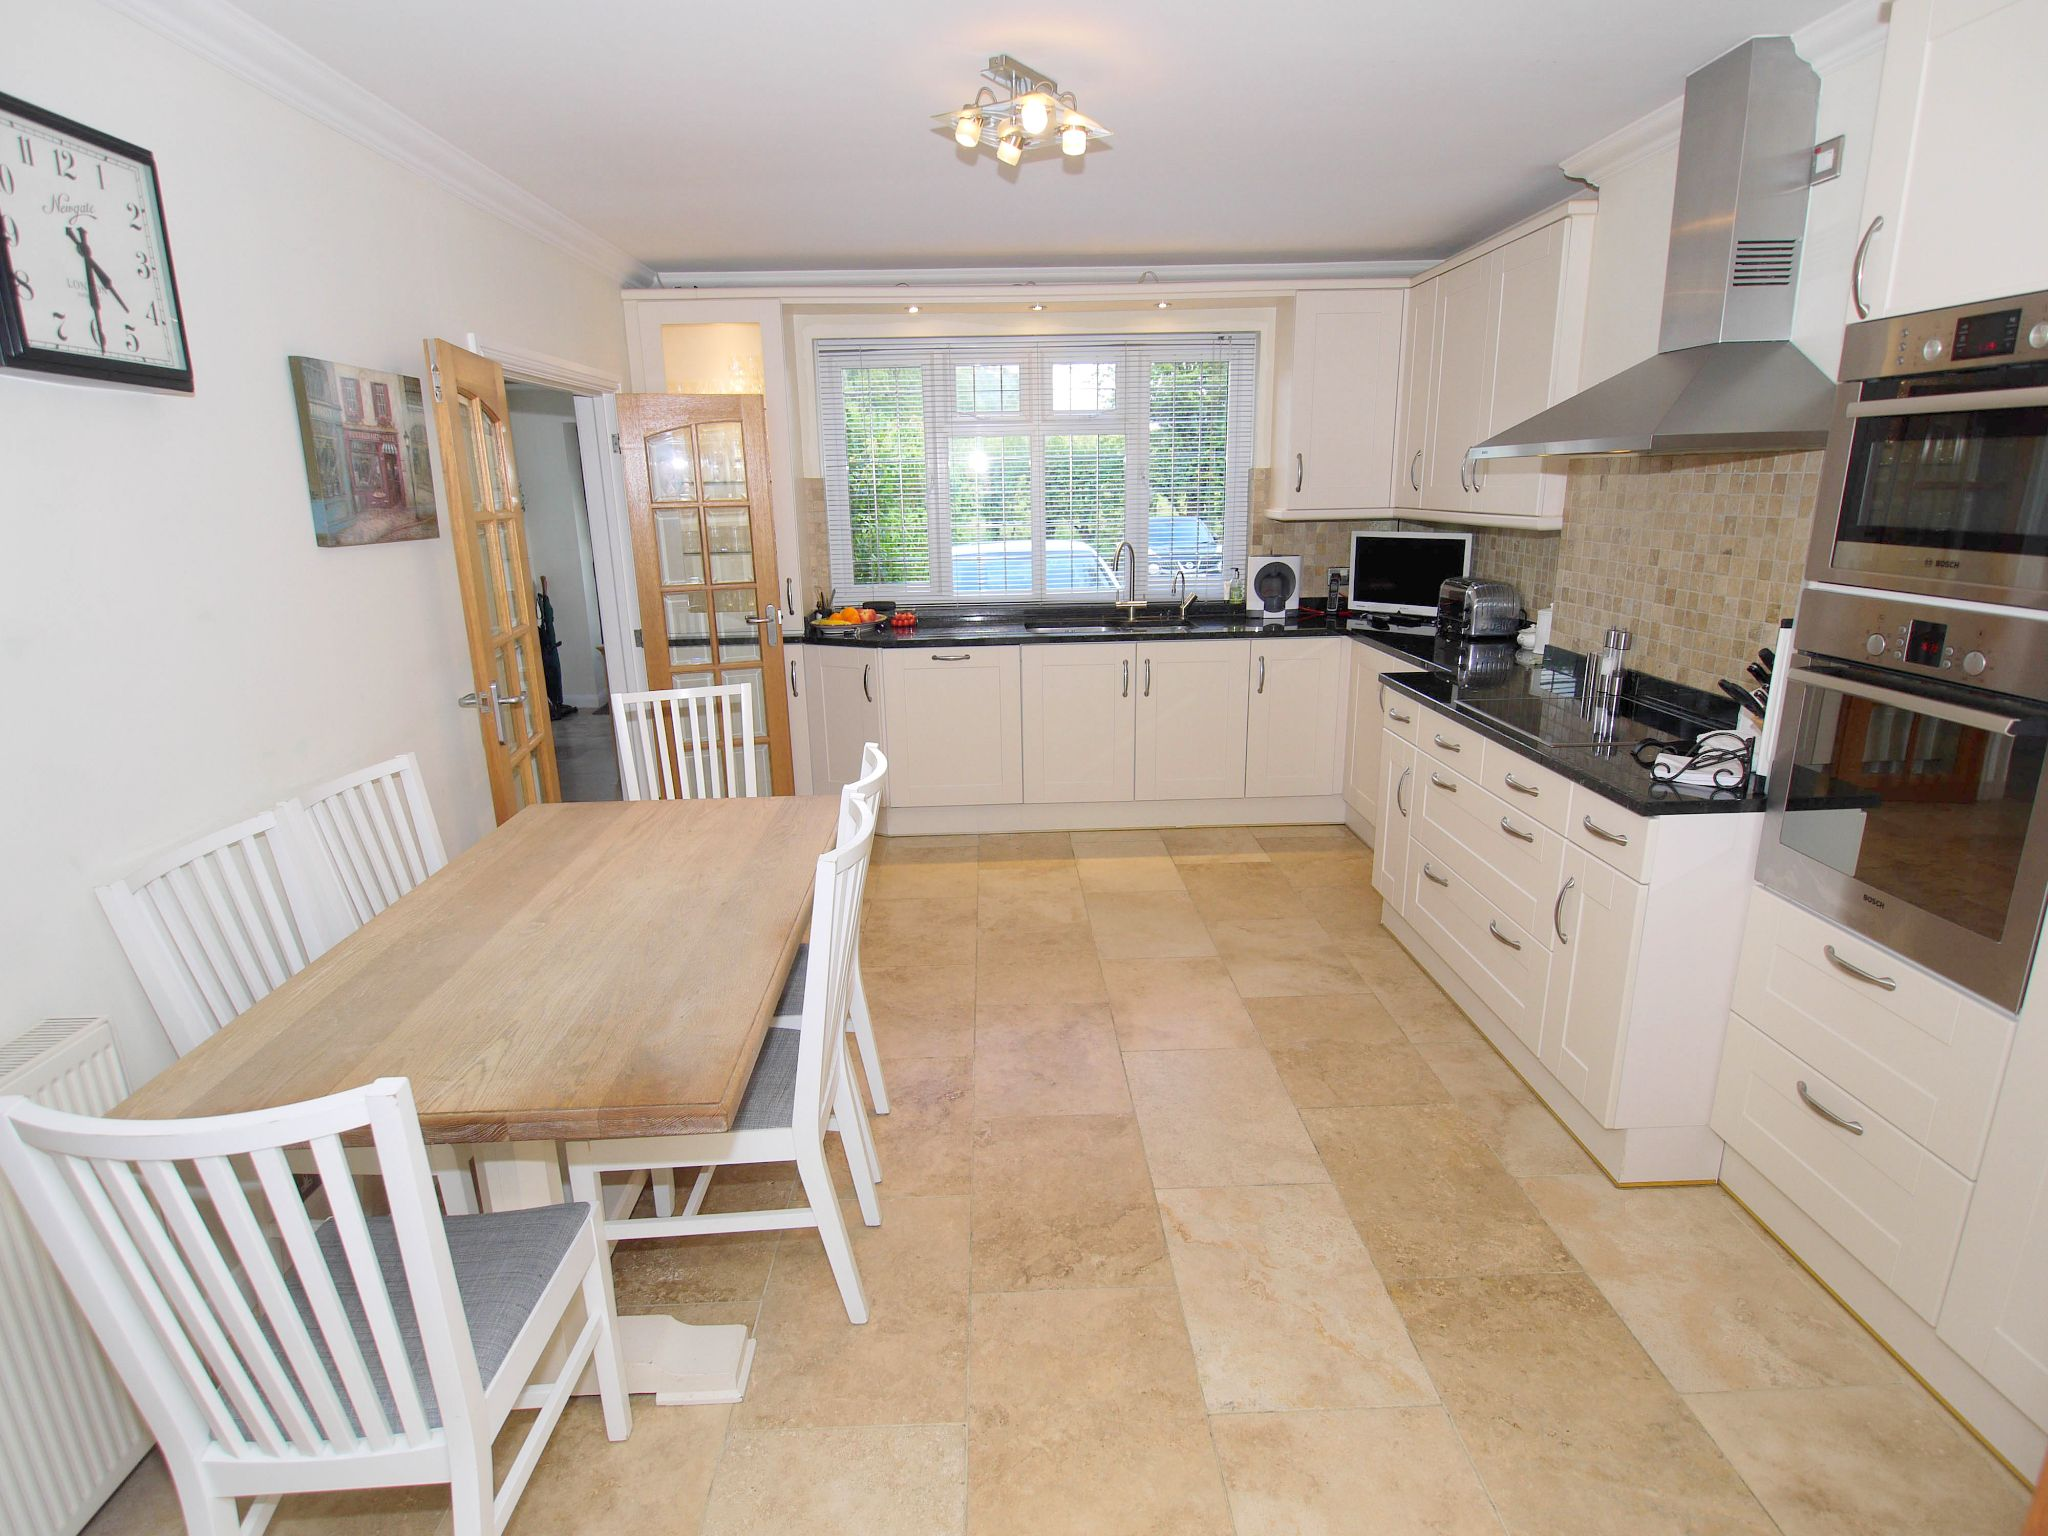 3 bedroom detached house Sold in Sevenoaks - Photograph 6